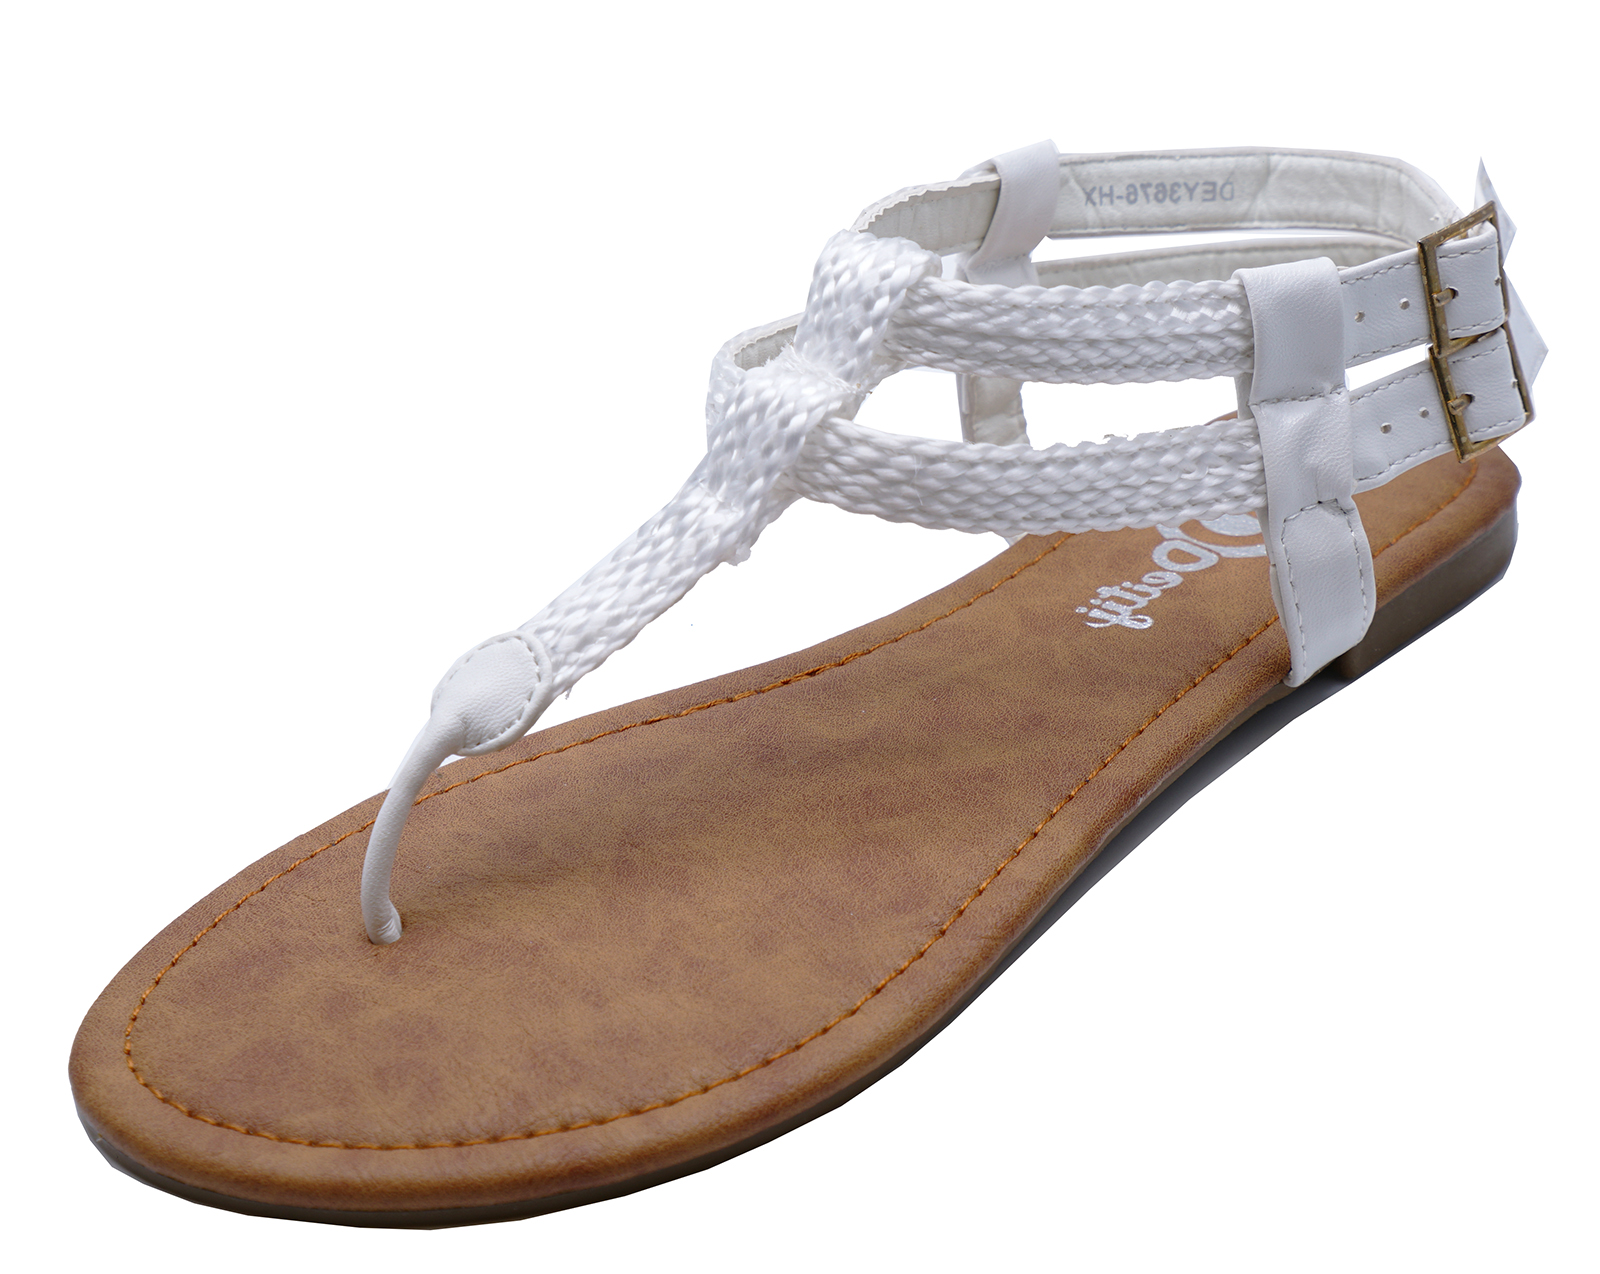 efb01b5608f7a Sentinel WOMENS WHITE TOE-POST GLADIATOR SUMMER FLIP-FLOP SANDALS FLAT SHOES  SIZES 2-. Sentinel Thumbnail 3